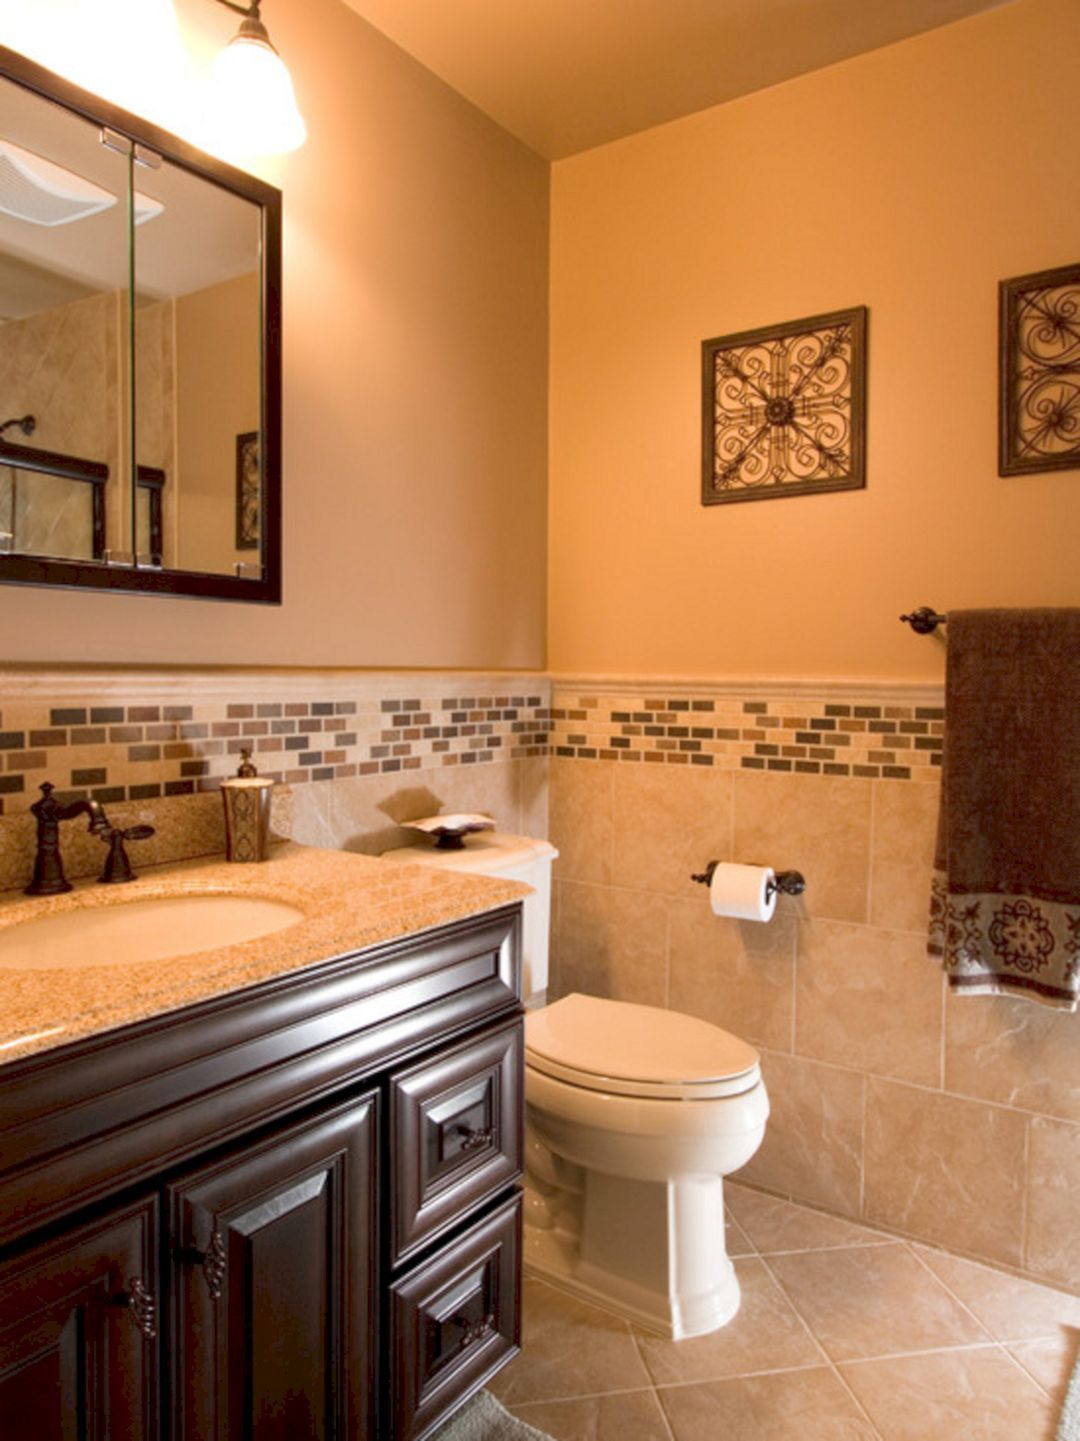 40 Inspiration Bathroom Remodel Ideas You Need To Try Decor Gardening Ideas Traditional Bathroom Bathroom Design Small Bathrooms Remodel